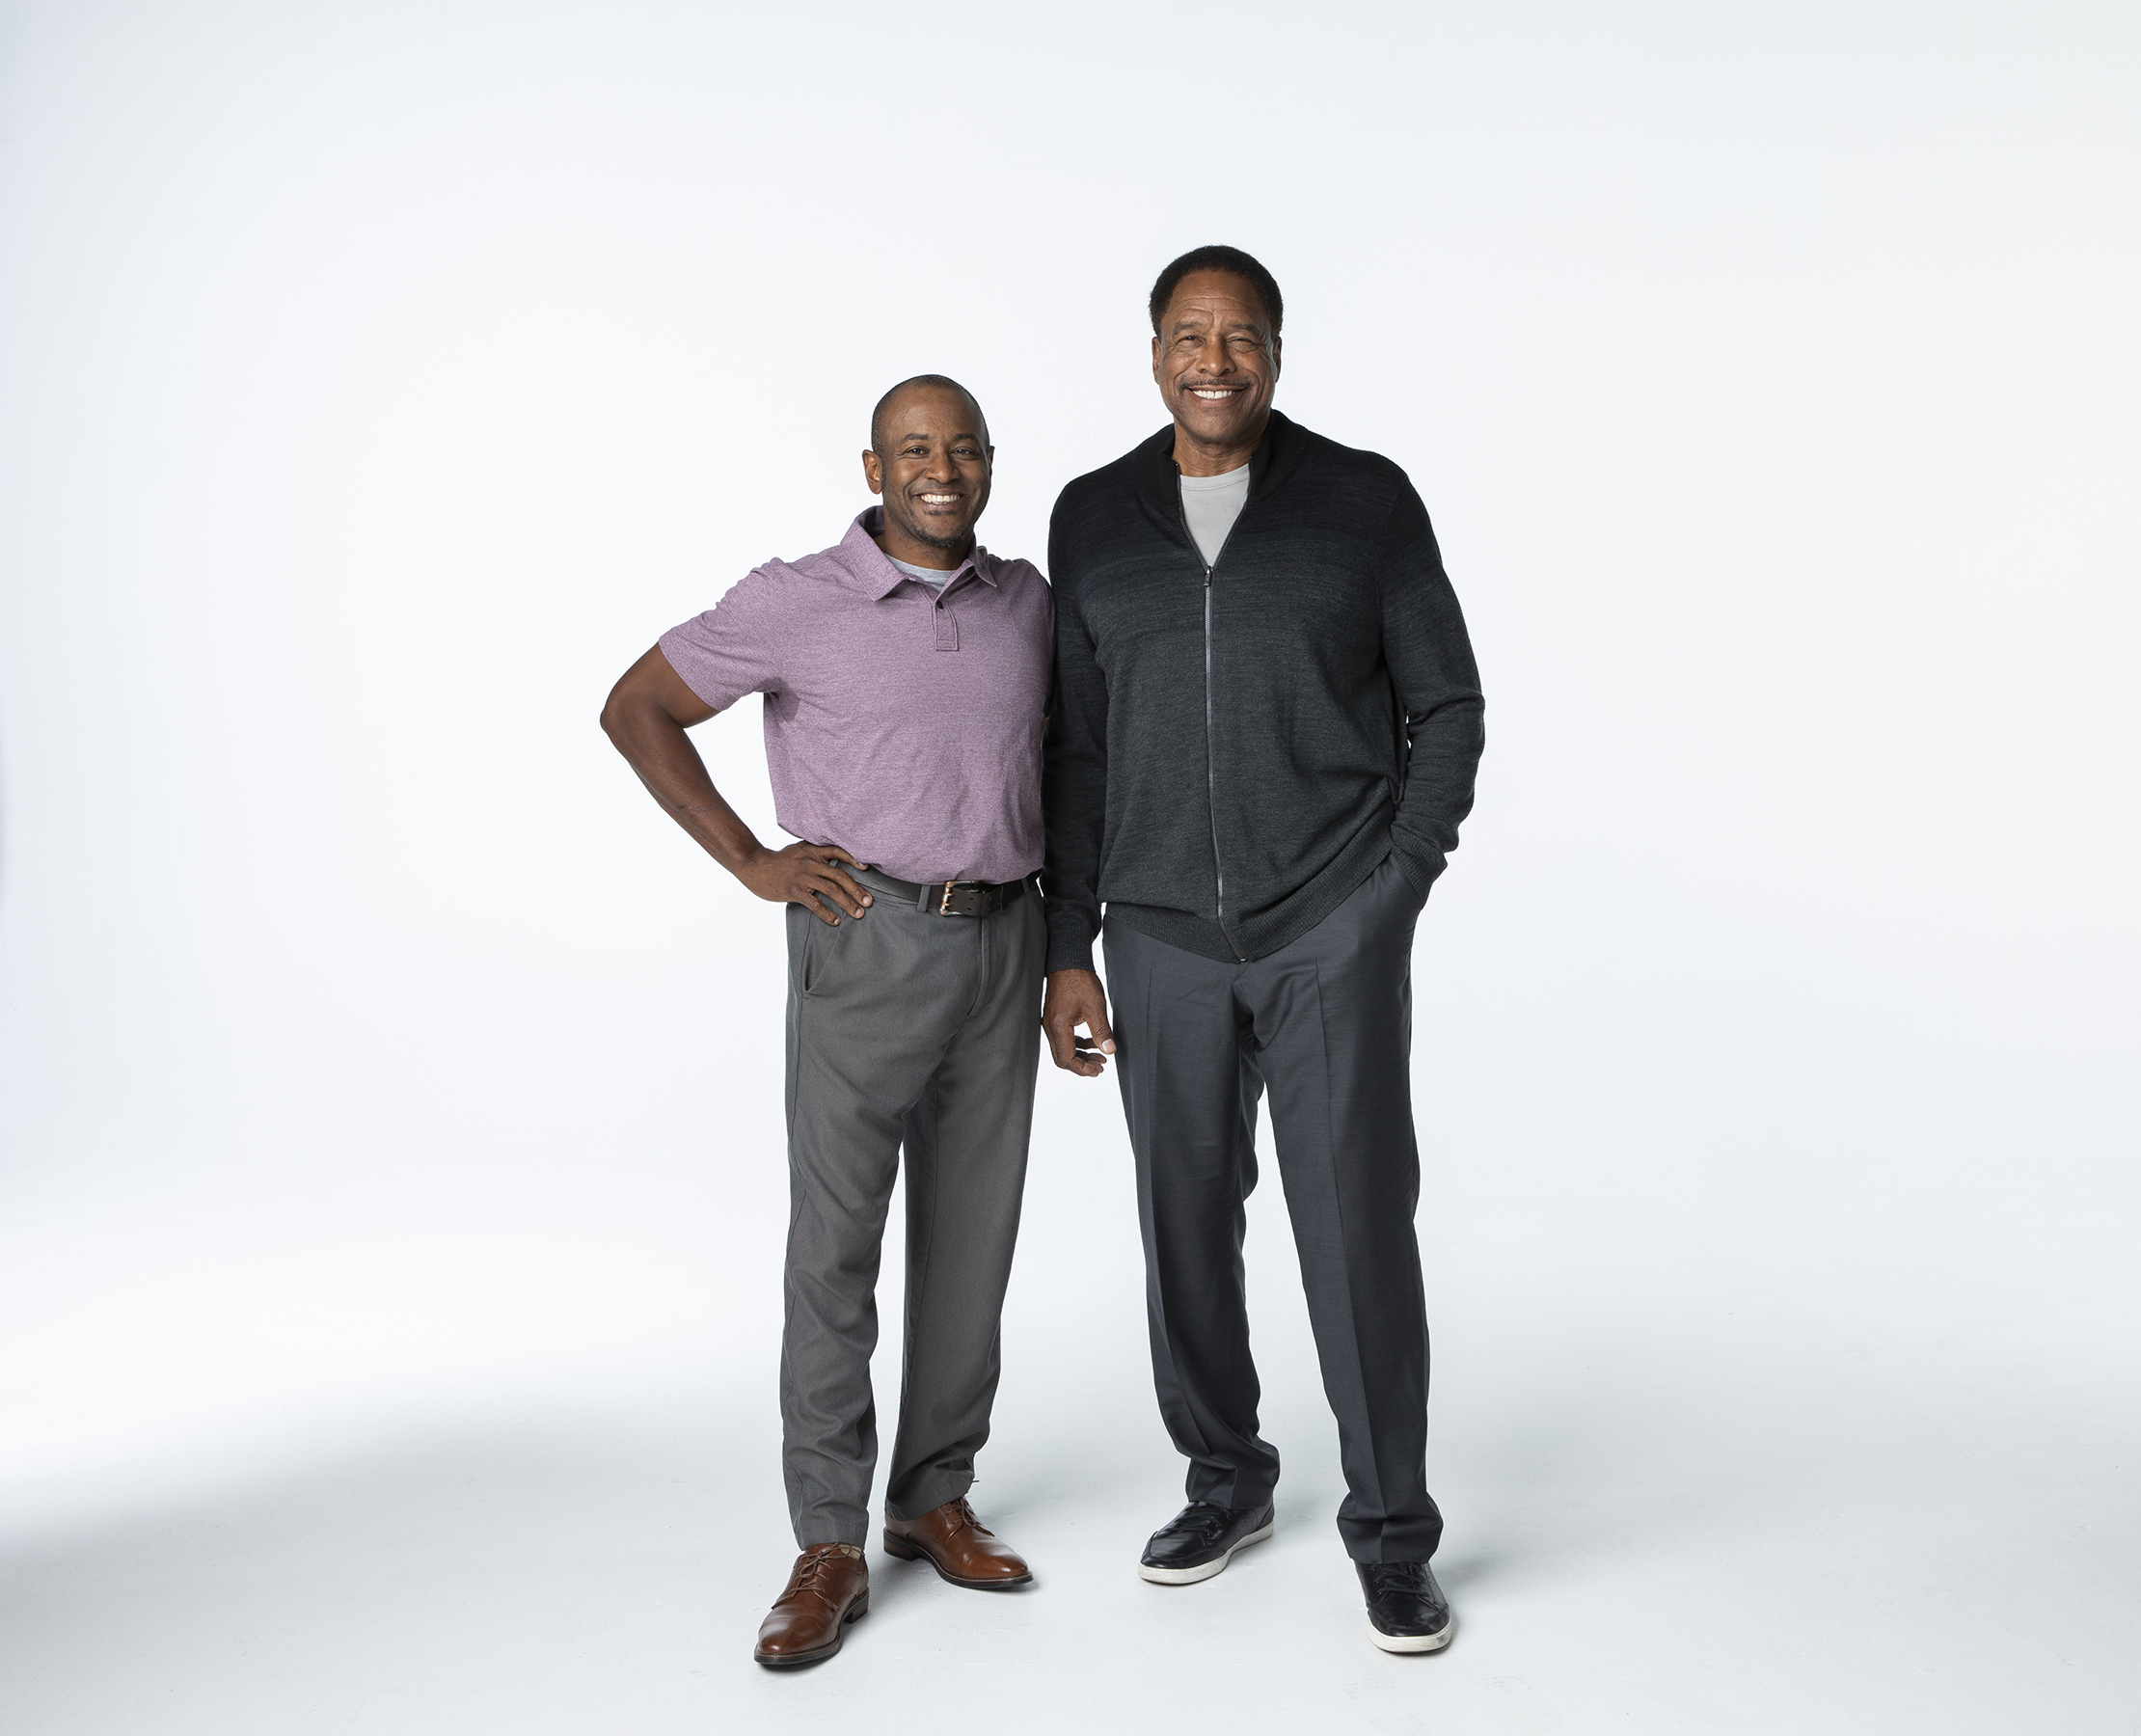 Don Baylor Jr. and Dave Winfield